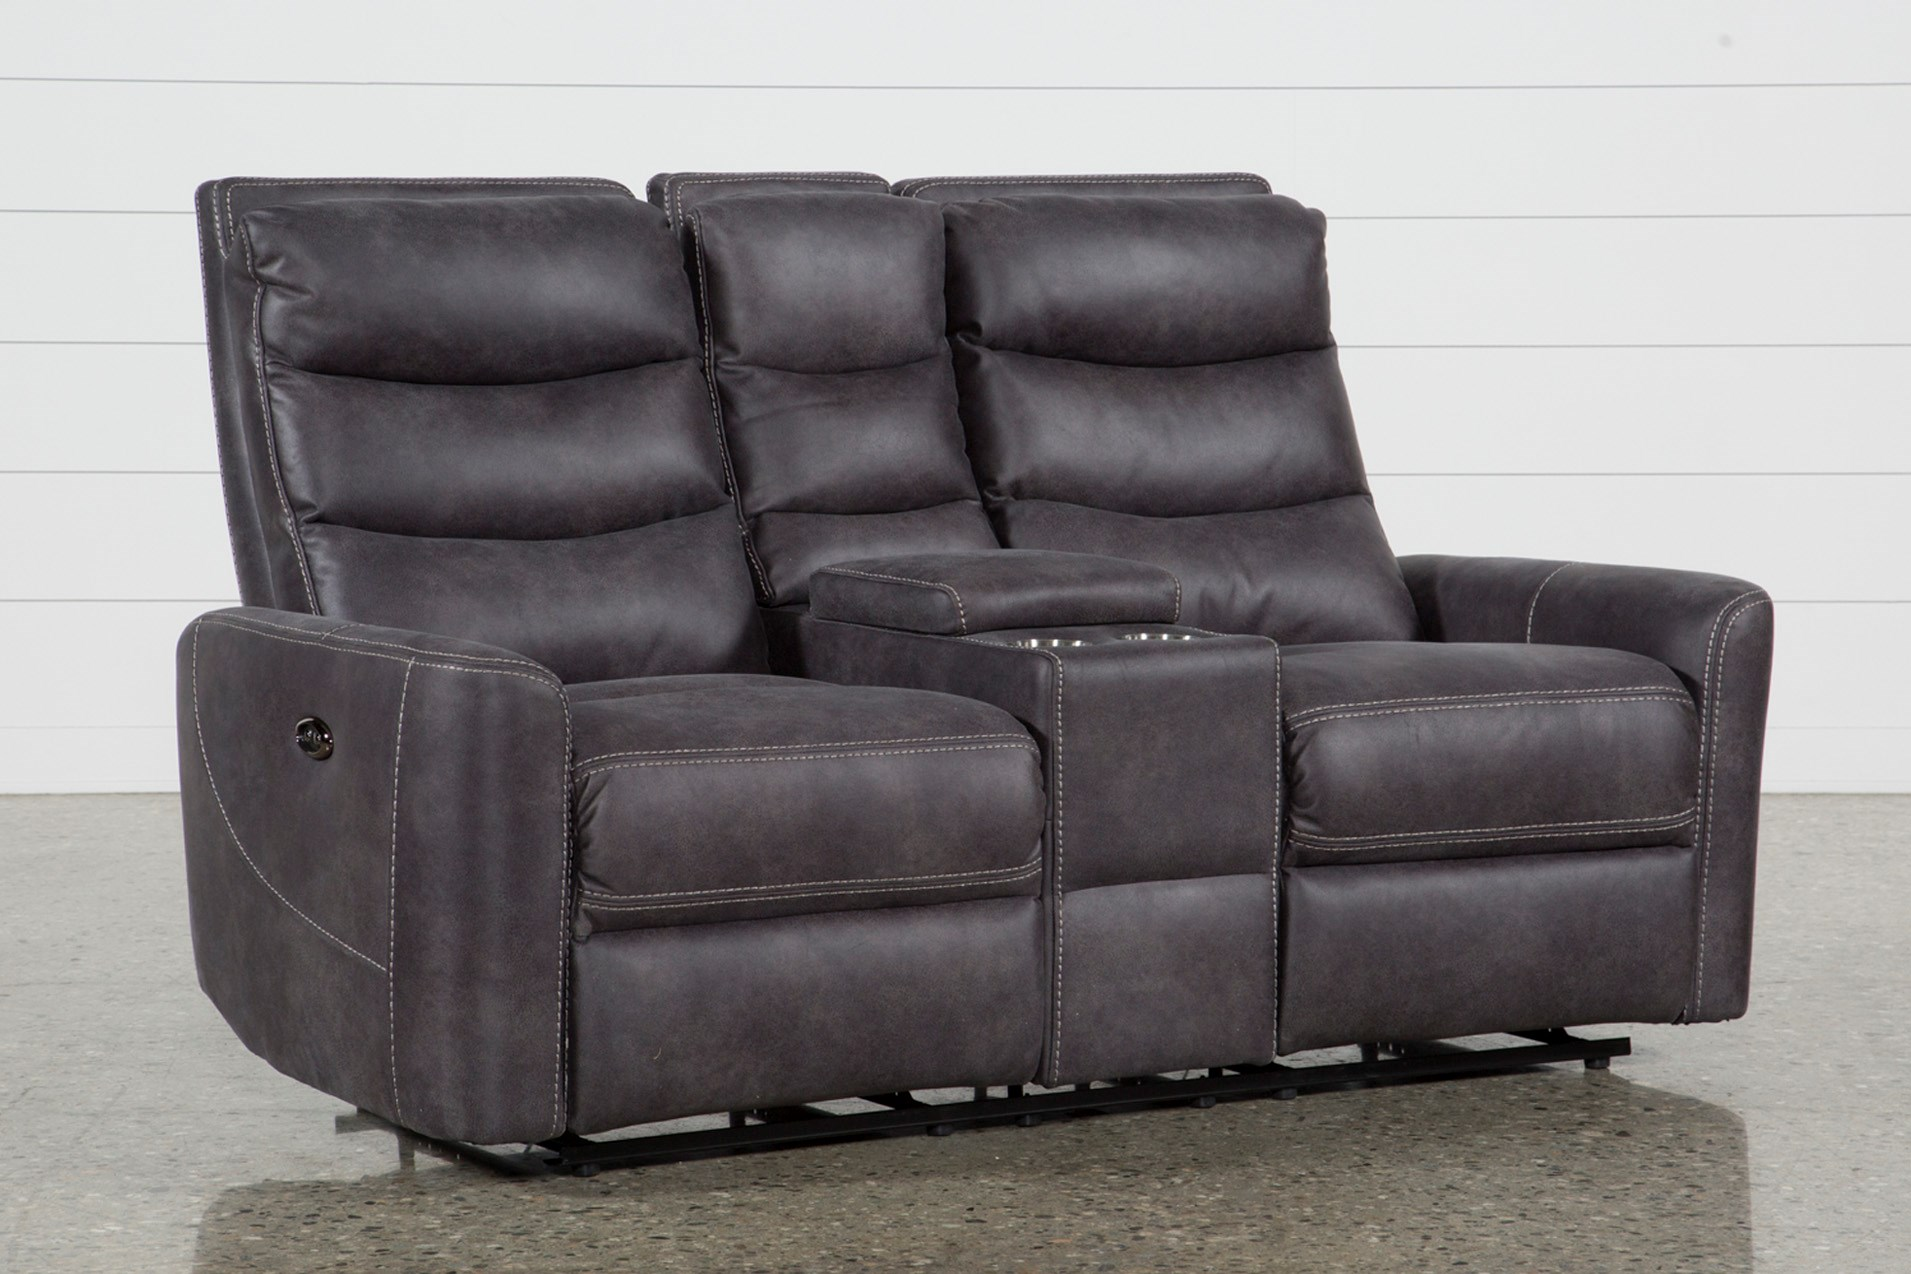 Malia power reclining console loveseat with usb qty 1 has been successfully added to your cart